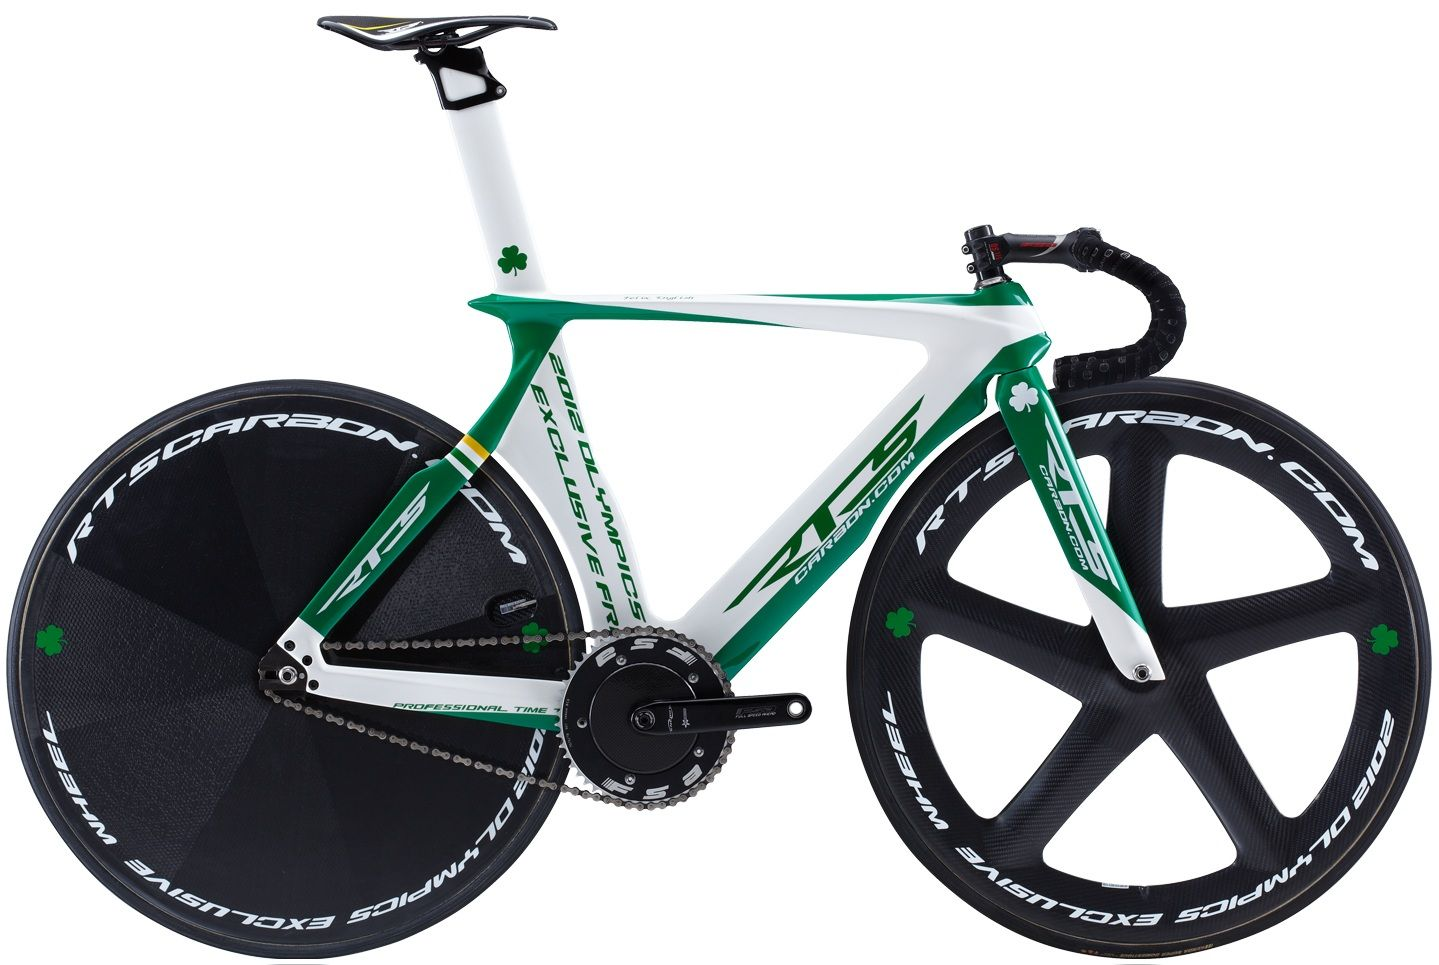 Rts Ttr1 Carbon Track Green White 2013 Bikes Cycles Trackbikes